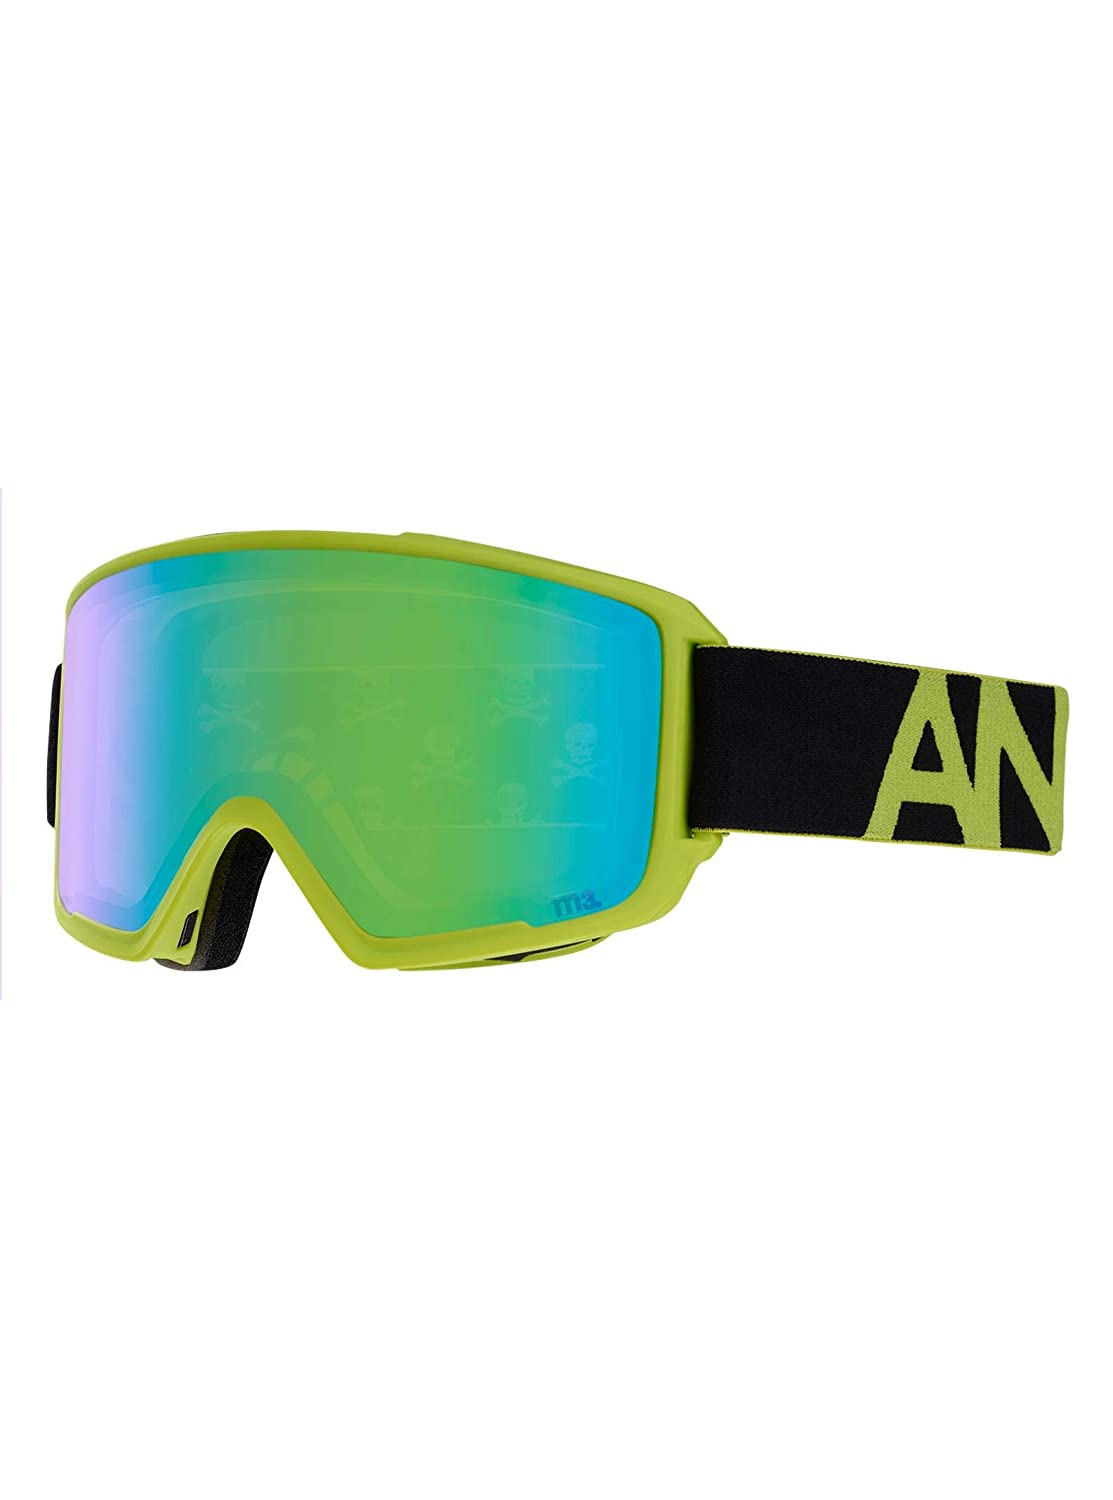 ff1ac13d7b8a Amazon.com   Anon M3 w Spare Goggles Black Green Sonar Green and Sonar  Infrared Lens Mens   Sports   Outdoors